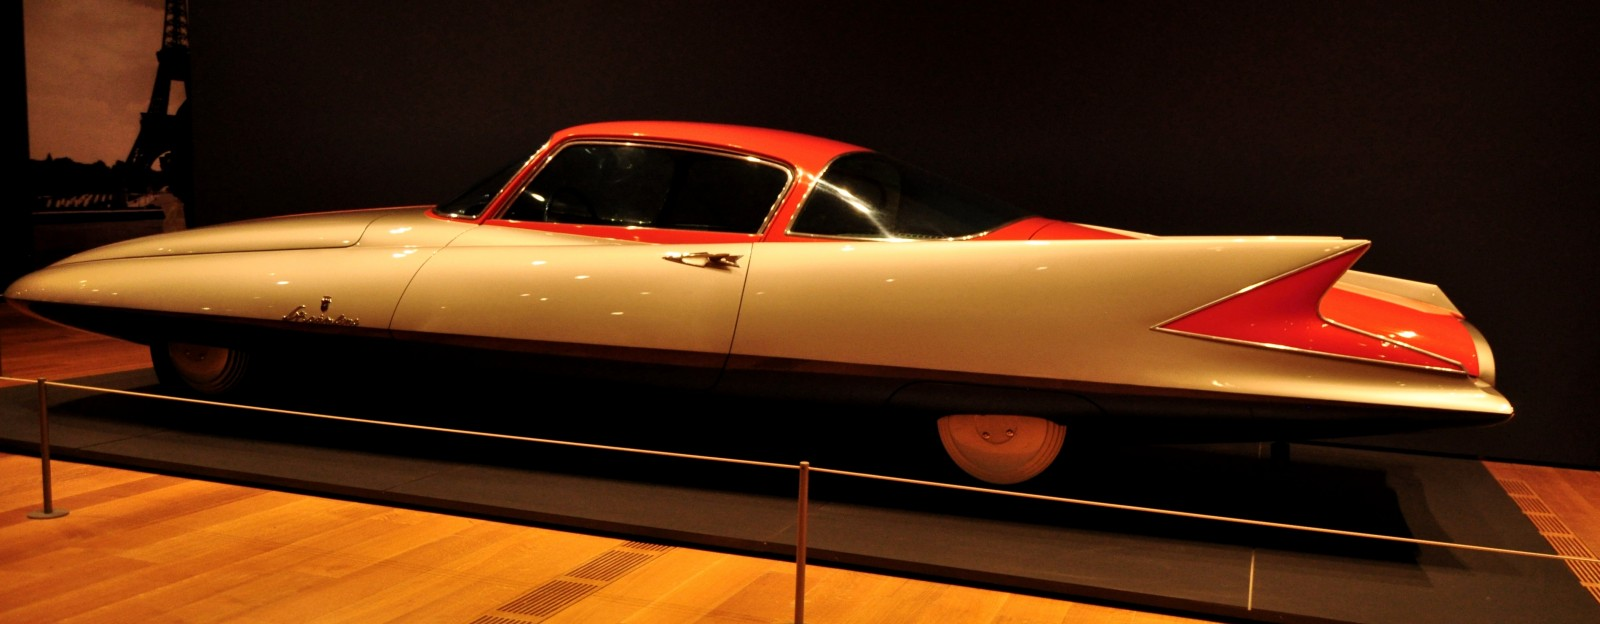 Atlanta Dream Cars - 1955 Chrysler Streamline X Ghilda by GHIA is Turbine Car Ideal 8